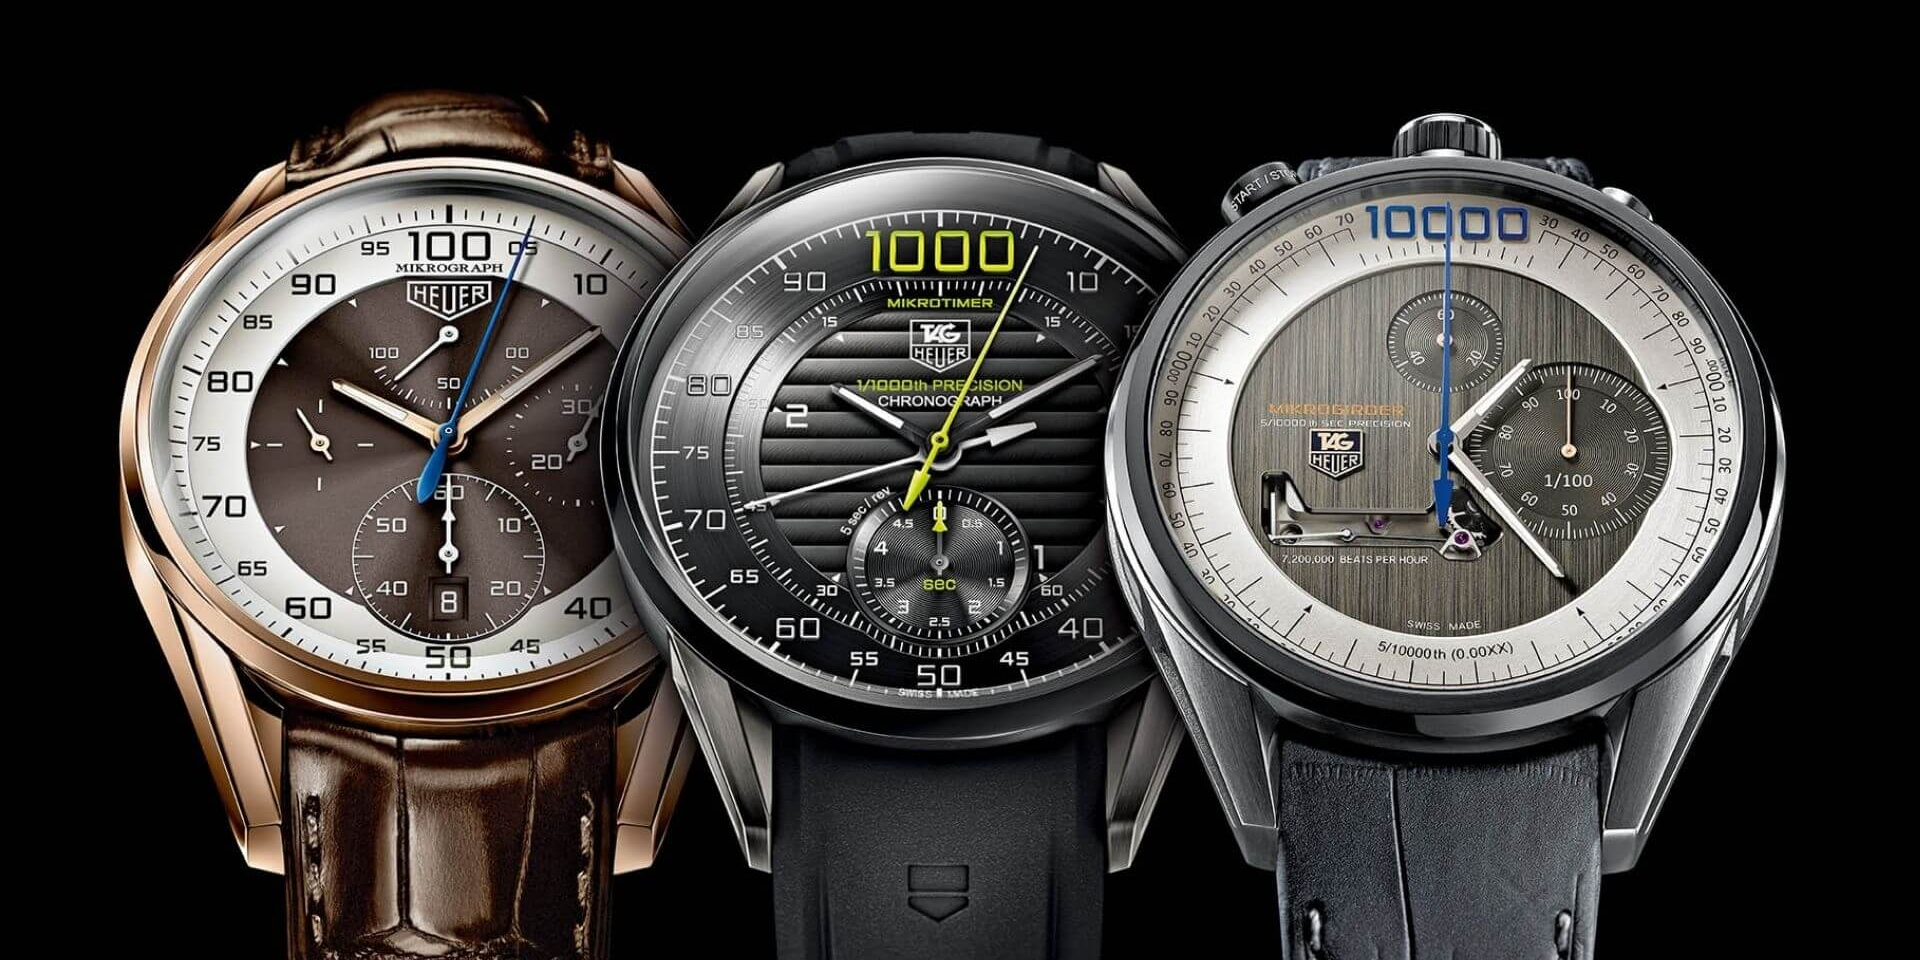 The world's fastest watches: movements with oscillating frequencies far beyond 4 Hz